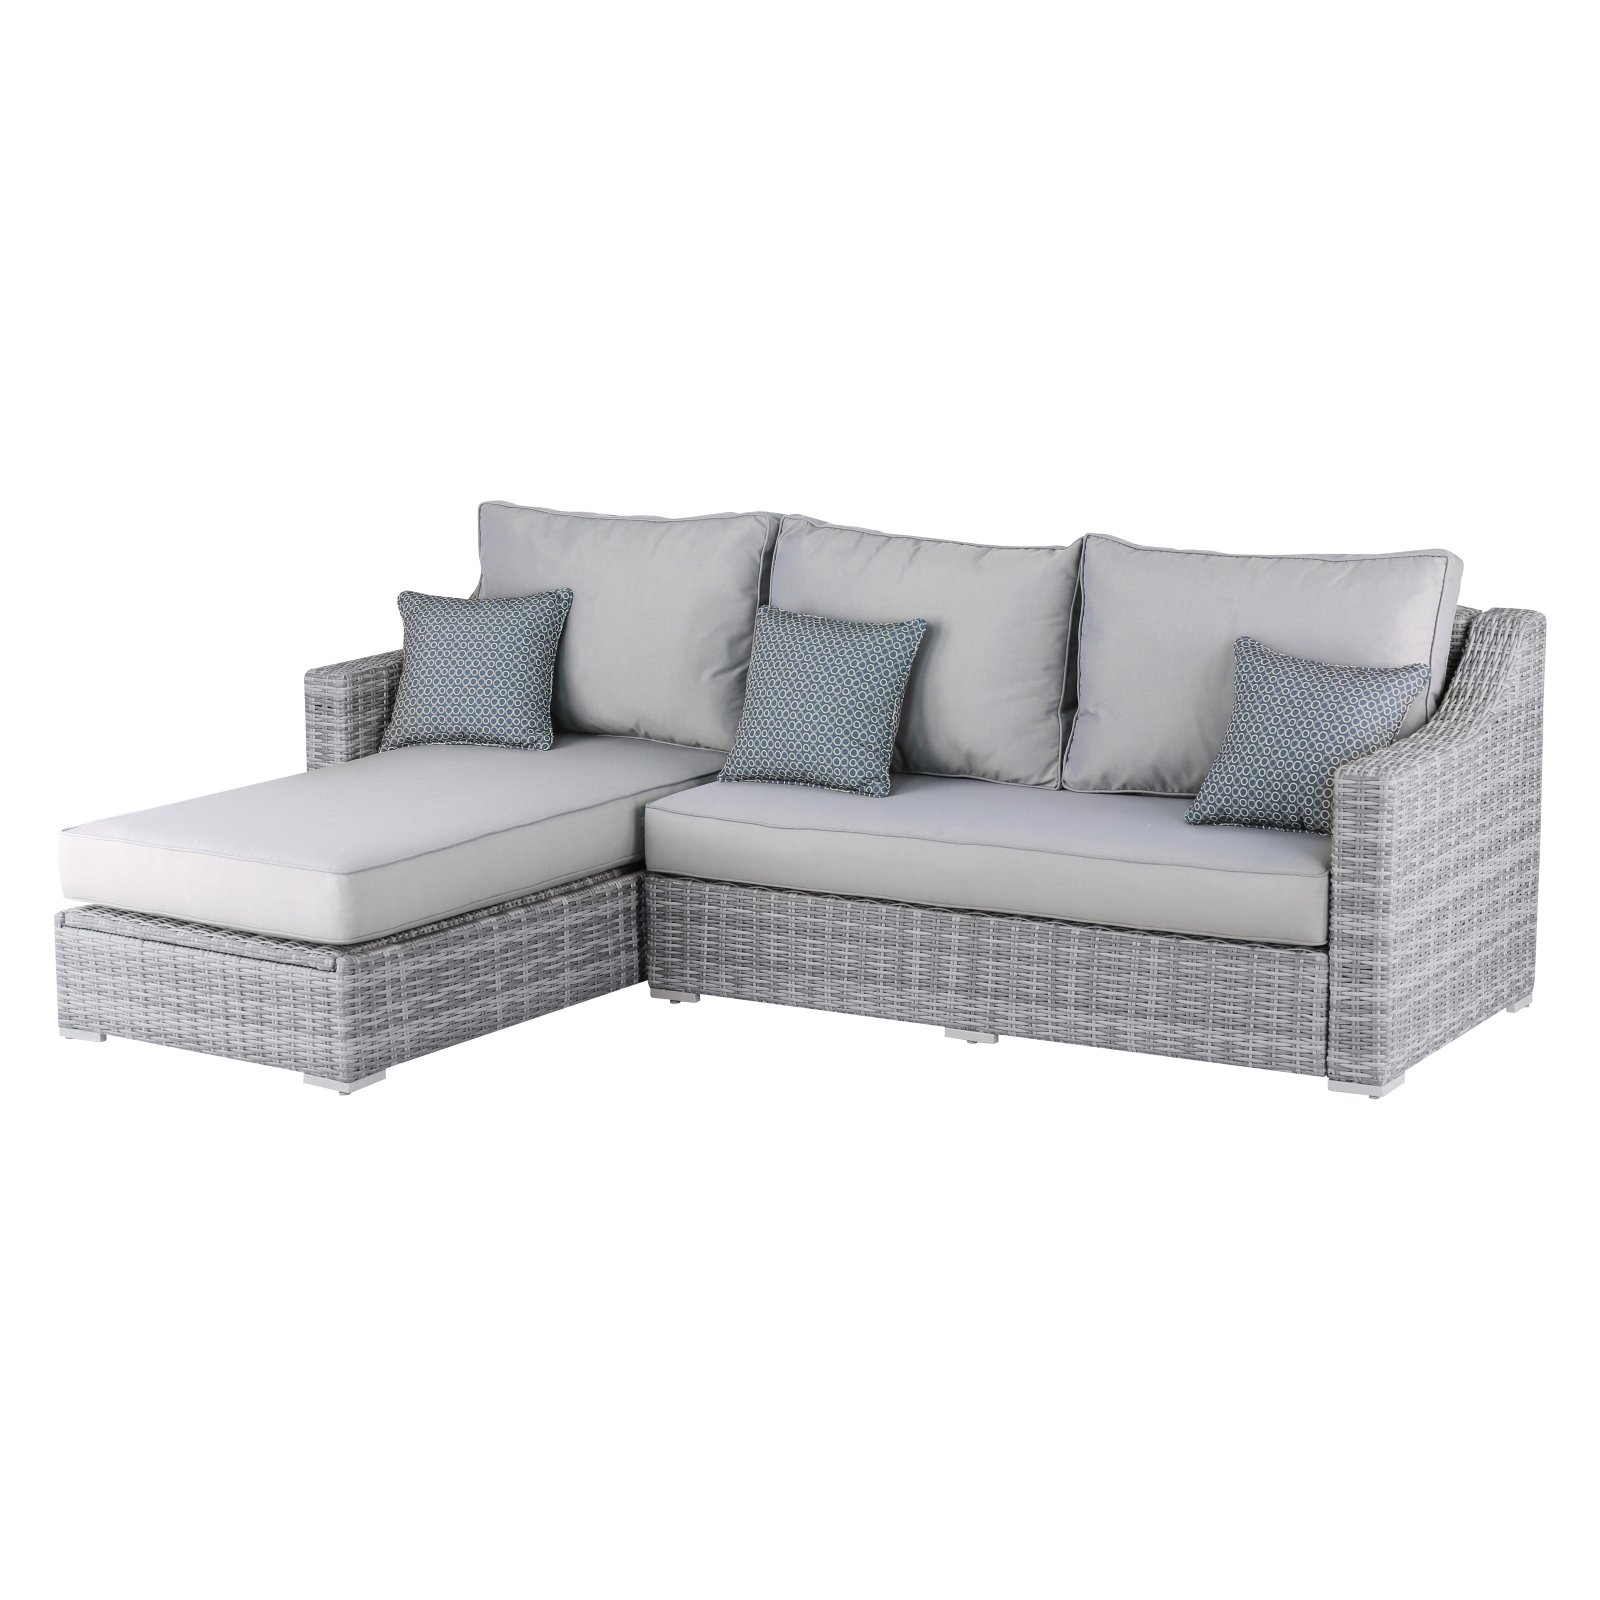 Vallauris Sofa With Cushions Intended For Well Liked Outdoor Elle Decor Vallauris Wicker Patio Storage Sectional Sofa (Gallery 3 of 20)